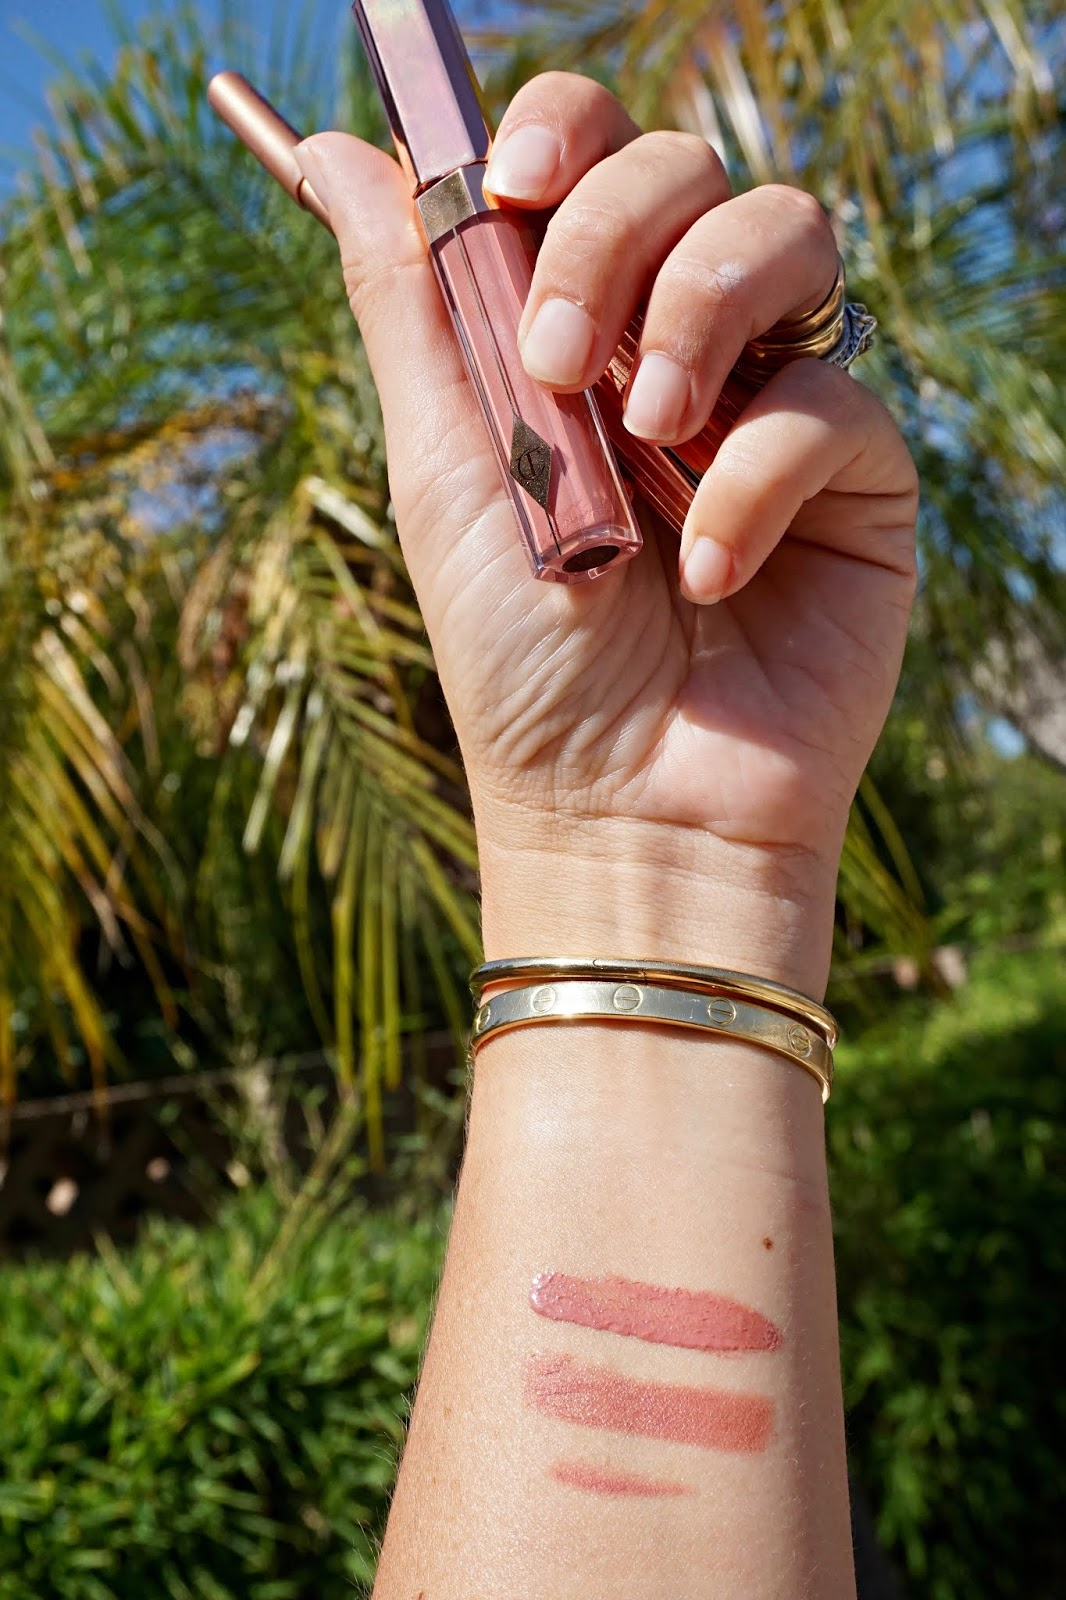 Charlotte Tilbury pillow talk lip kit Nordstrom anniversary sale swatches